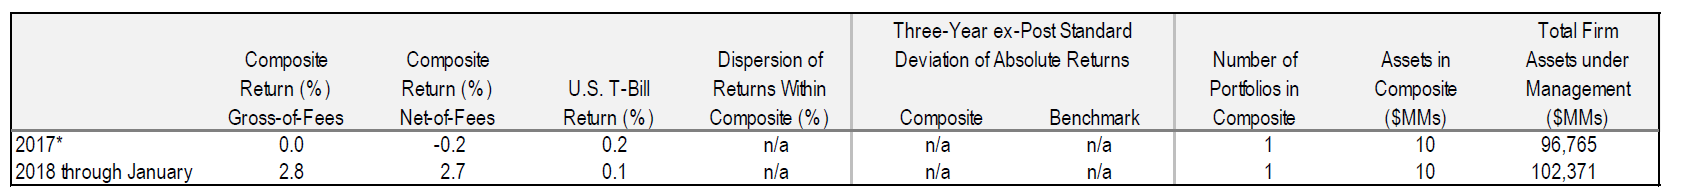 Performance Disclosure - Multi-Asset Absolute Return Strategy